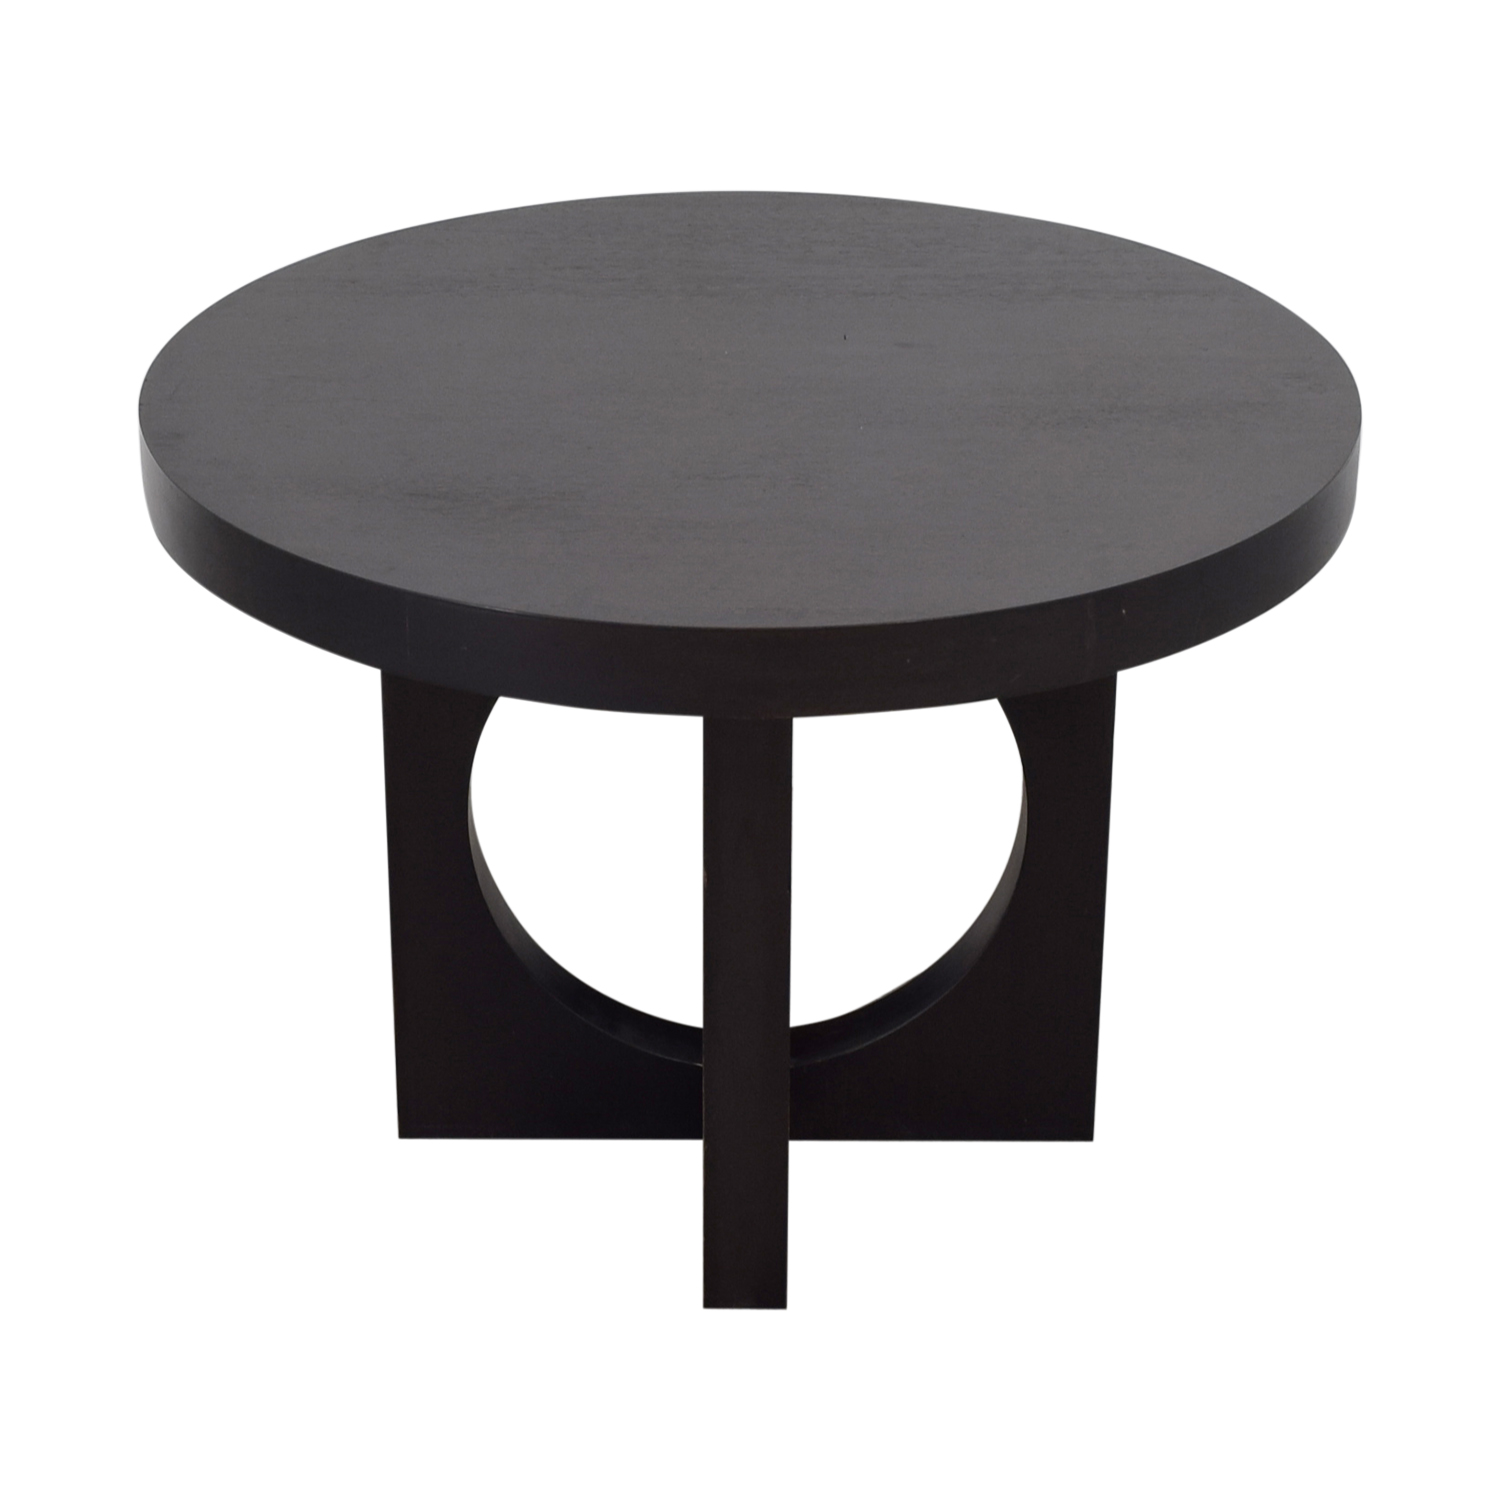 West Elm Black Round Dining Table sale